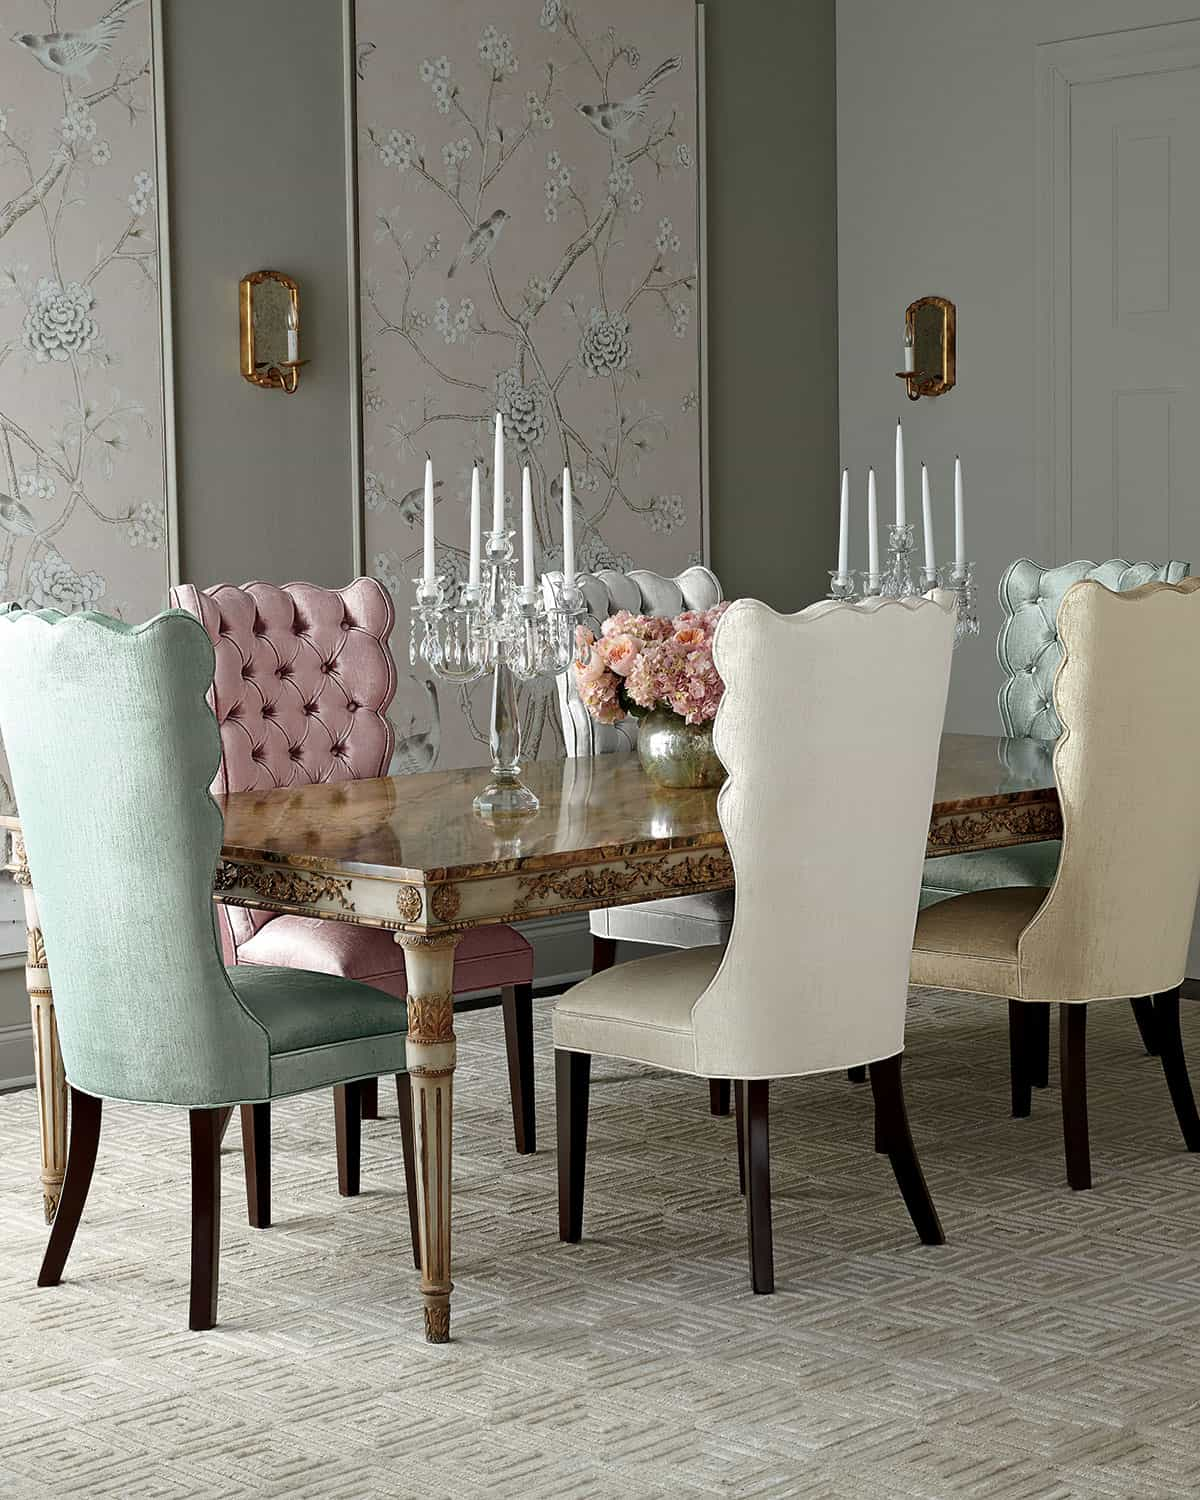 Bedroom Chairs With Table Red Velvet Curtains Bedroom Anime Bedroom Drawing Newcastle United Bedroom Wallpaper: How To Incorporate The Latest Trend Velvet Into Your Home